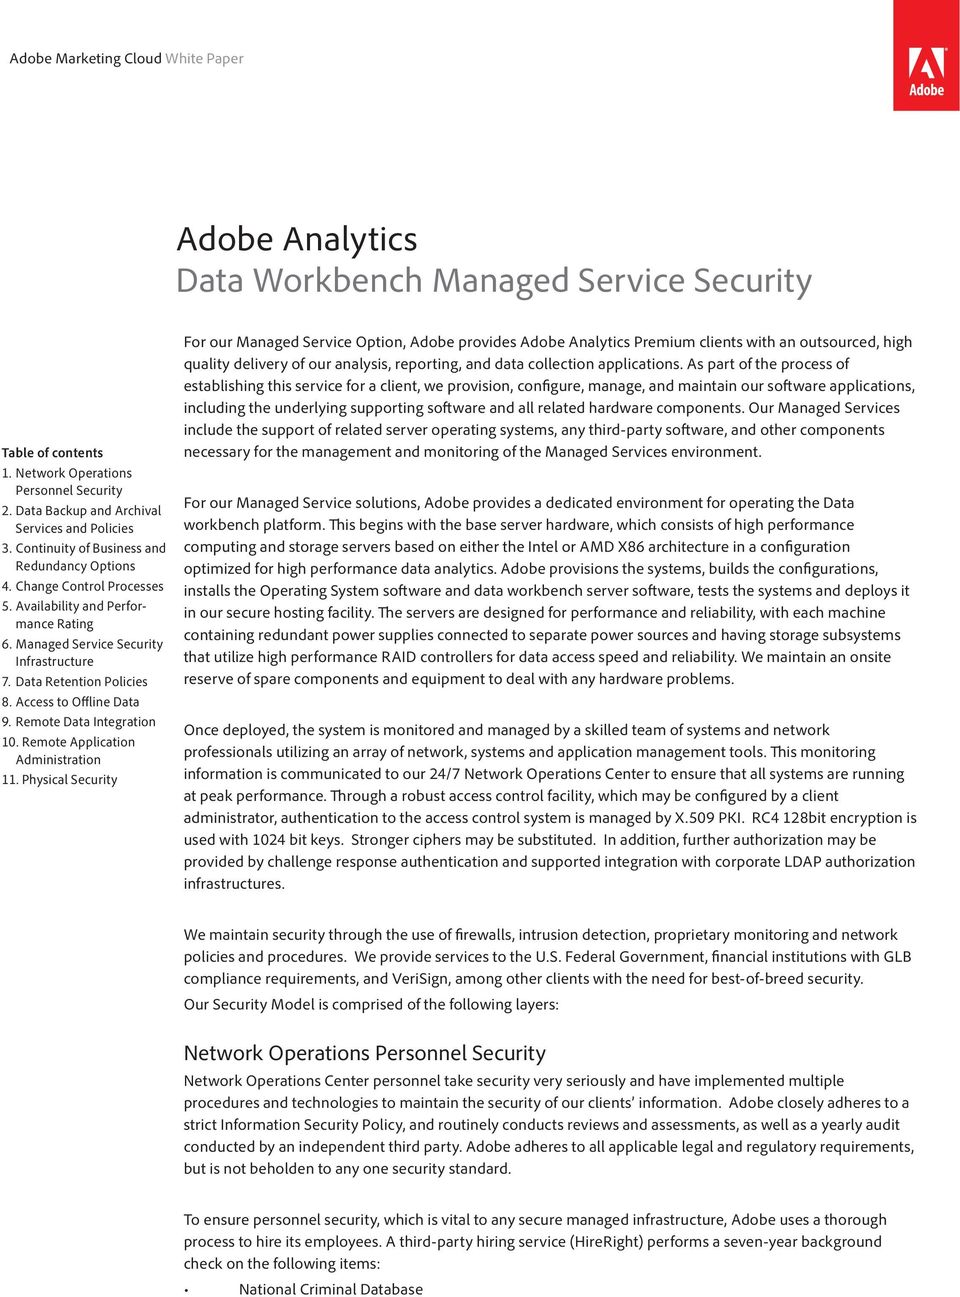 Managed Service Security Infrastructure 7. Data Retention Policies 8. Access to Offline Data 9. Remote Data Integration 10. Remote Application Administration 11.